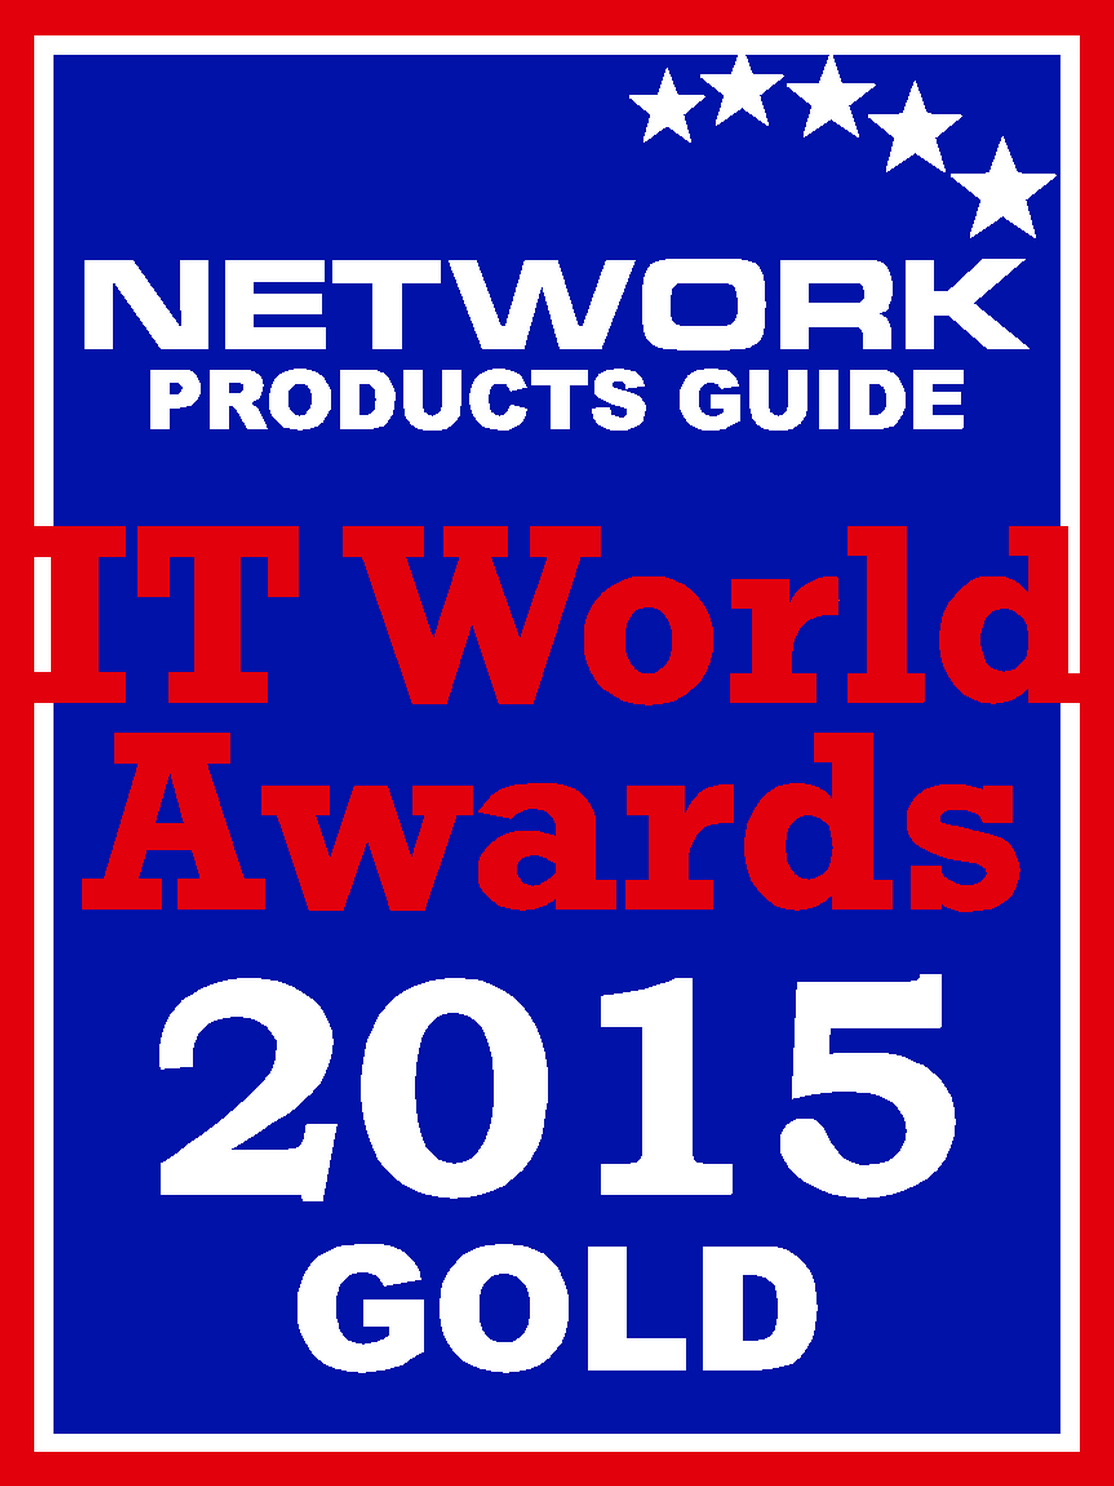 network-products-guide-it-world-awards-2015-gold.png